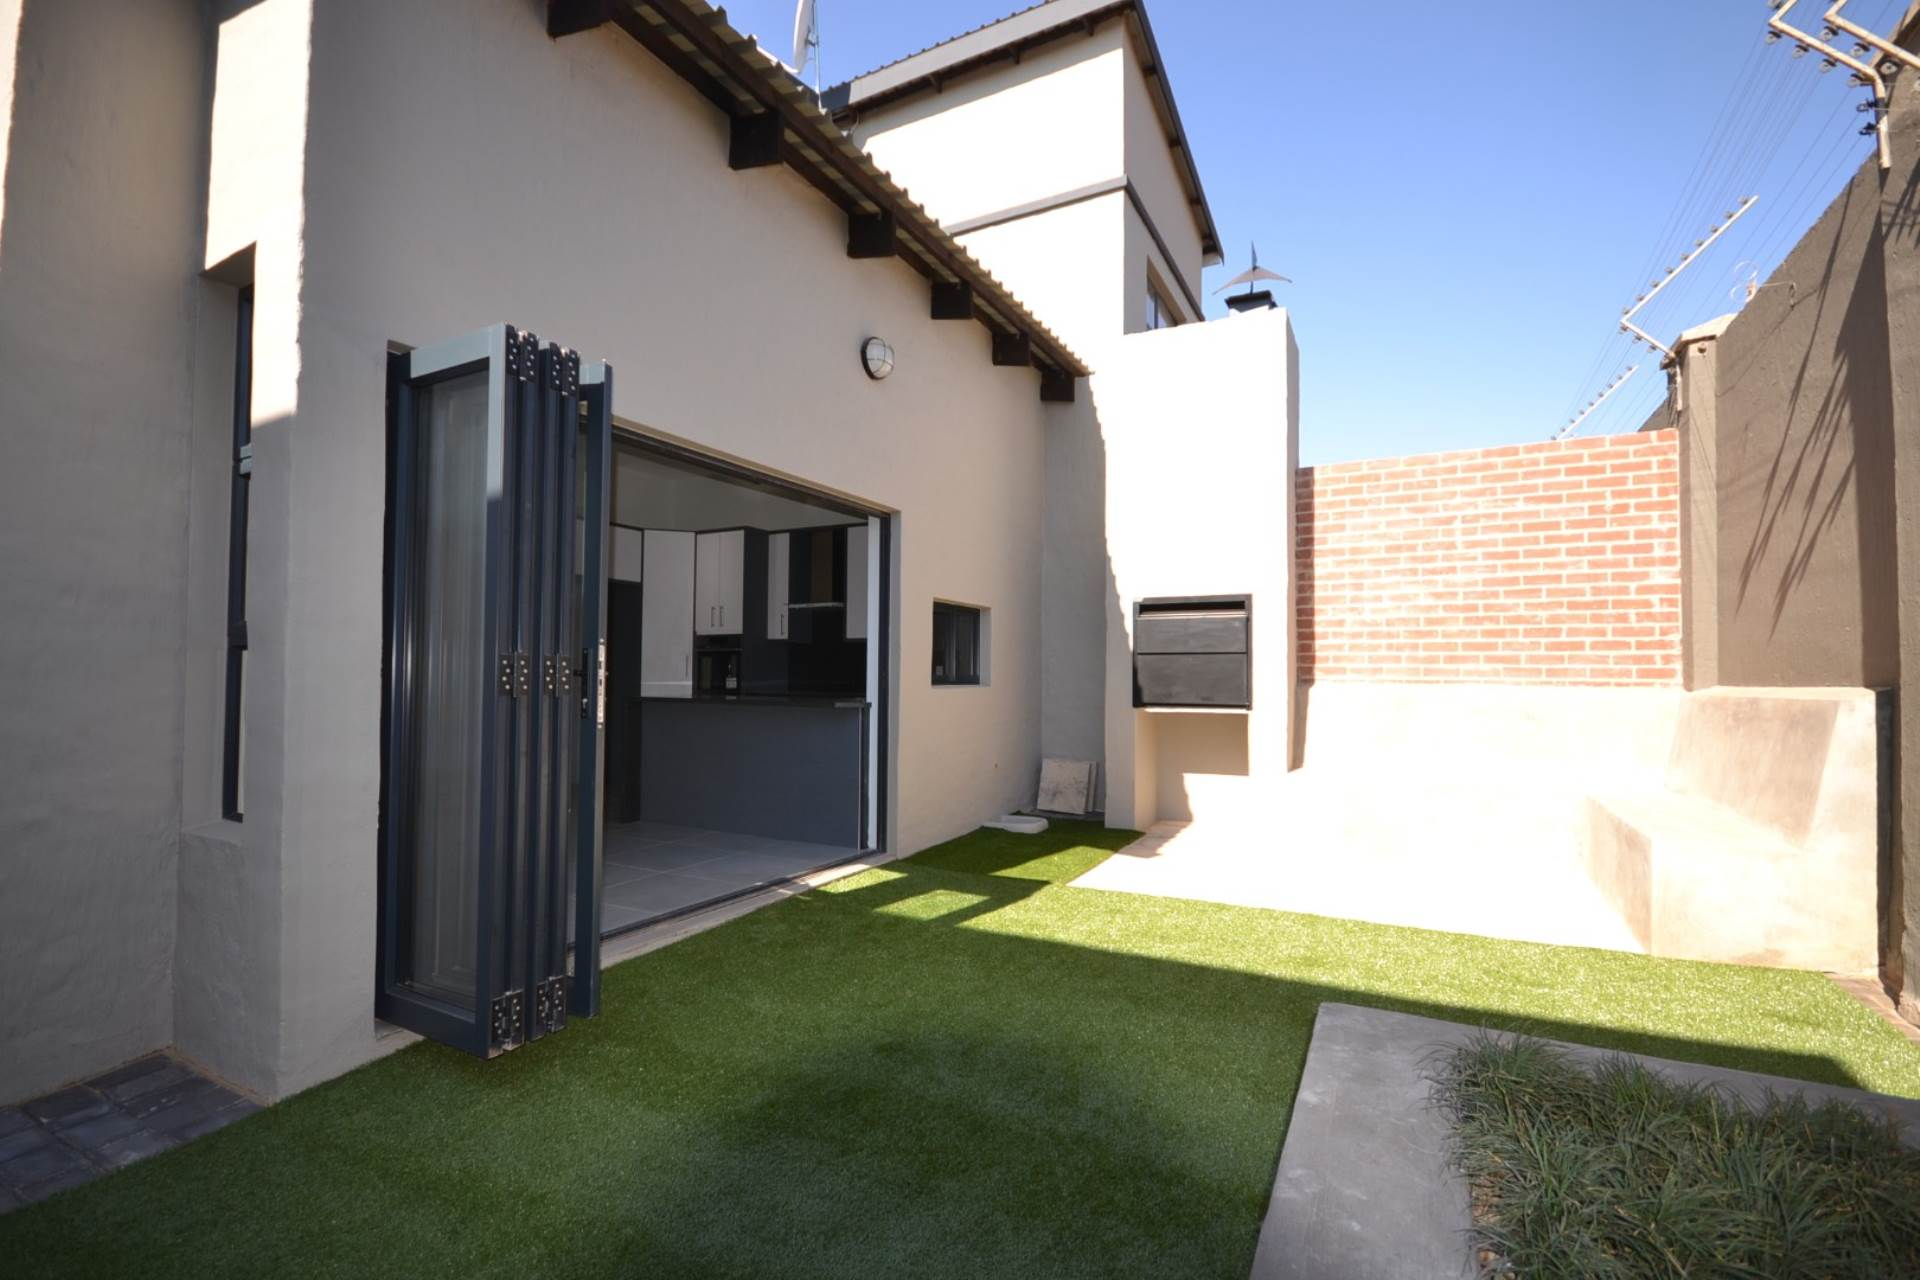 Property and Houses for sale in Olympus - Page 4, Cluster, 3 Bedrooms - ZAR 1,795,000